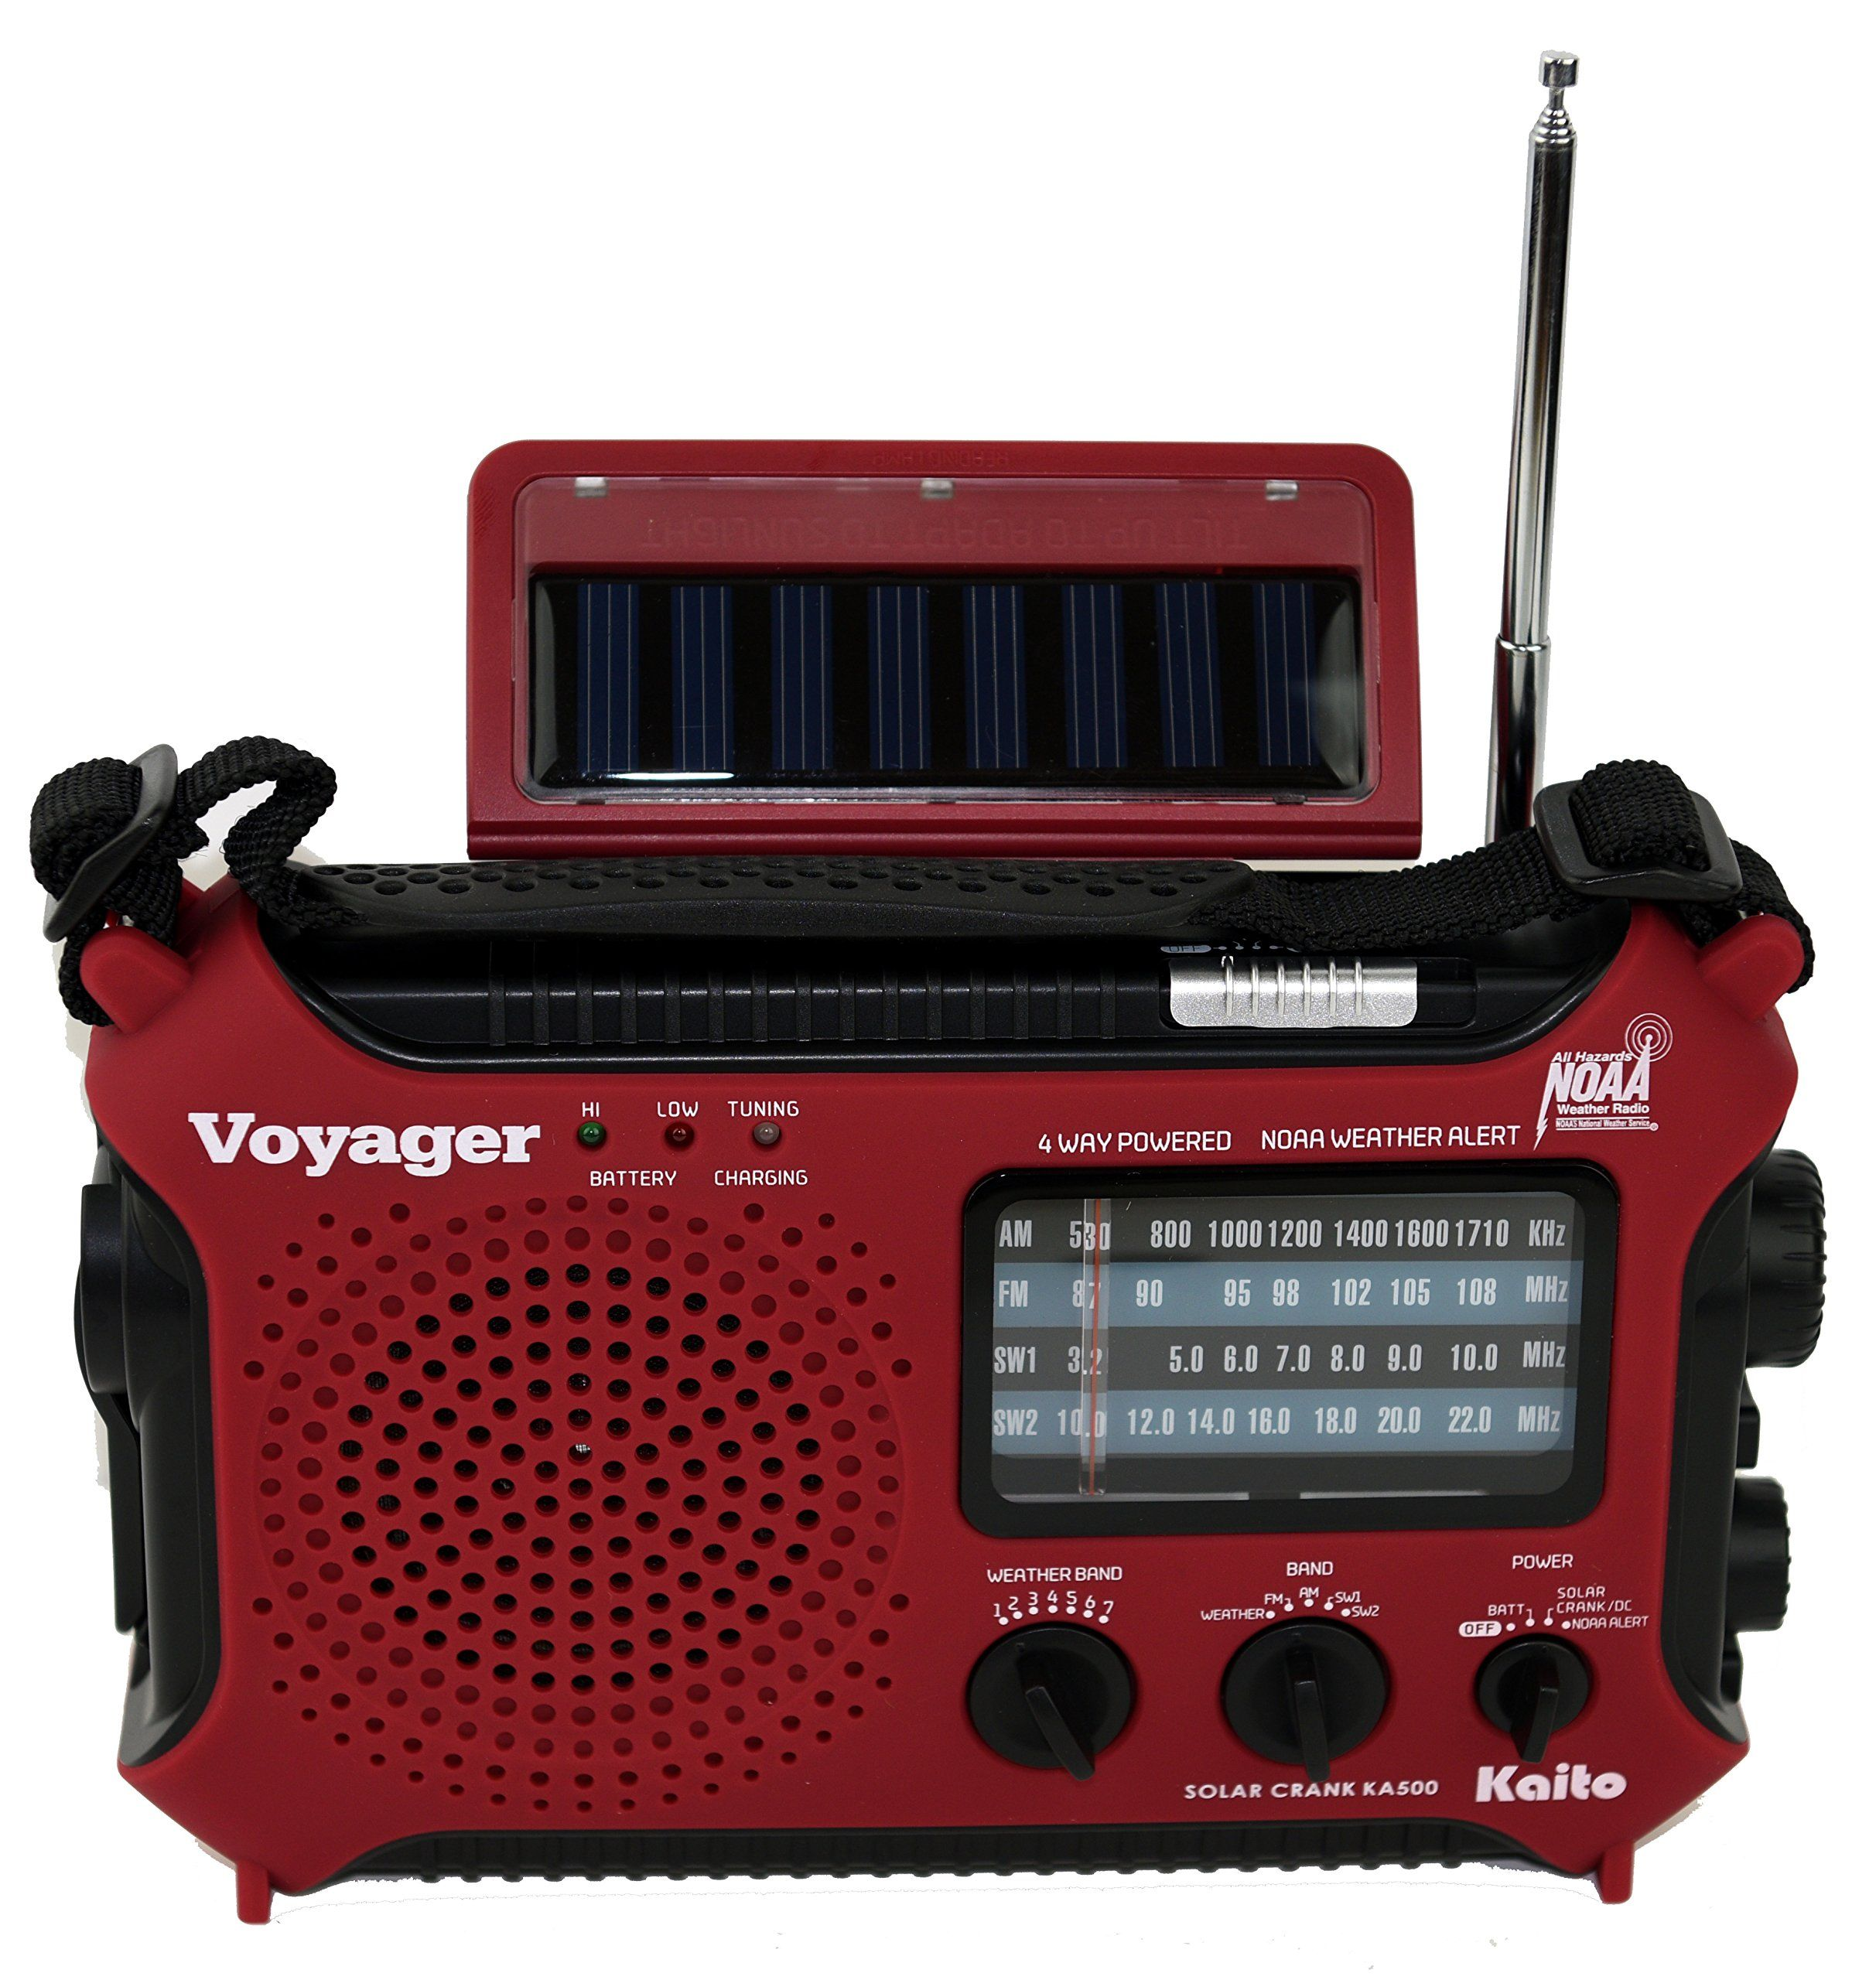 Kaito Ka500ip Red Voyager Solar Dynamo Am Fm Sw Noaa Weather Radio With Alert And Cell Phone Charger Red Emergency Radio Weather Radio Noaa Weather Radio